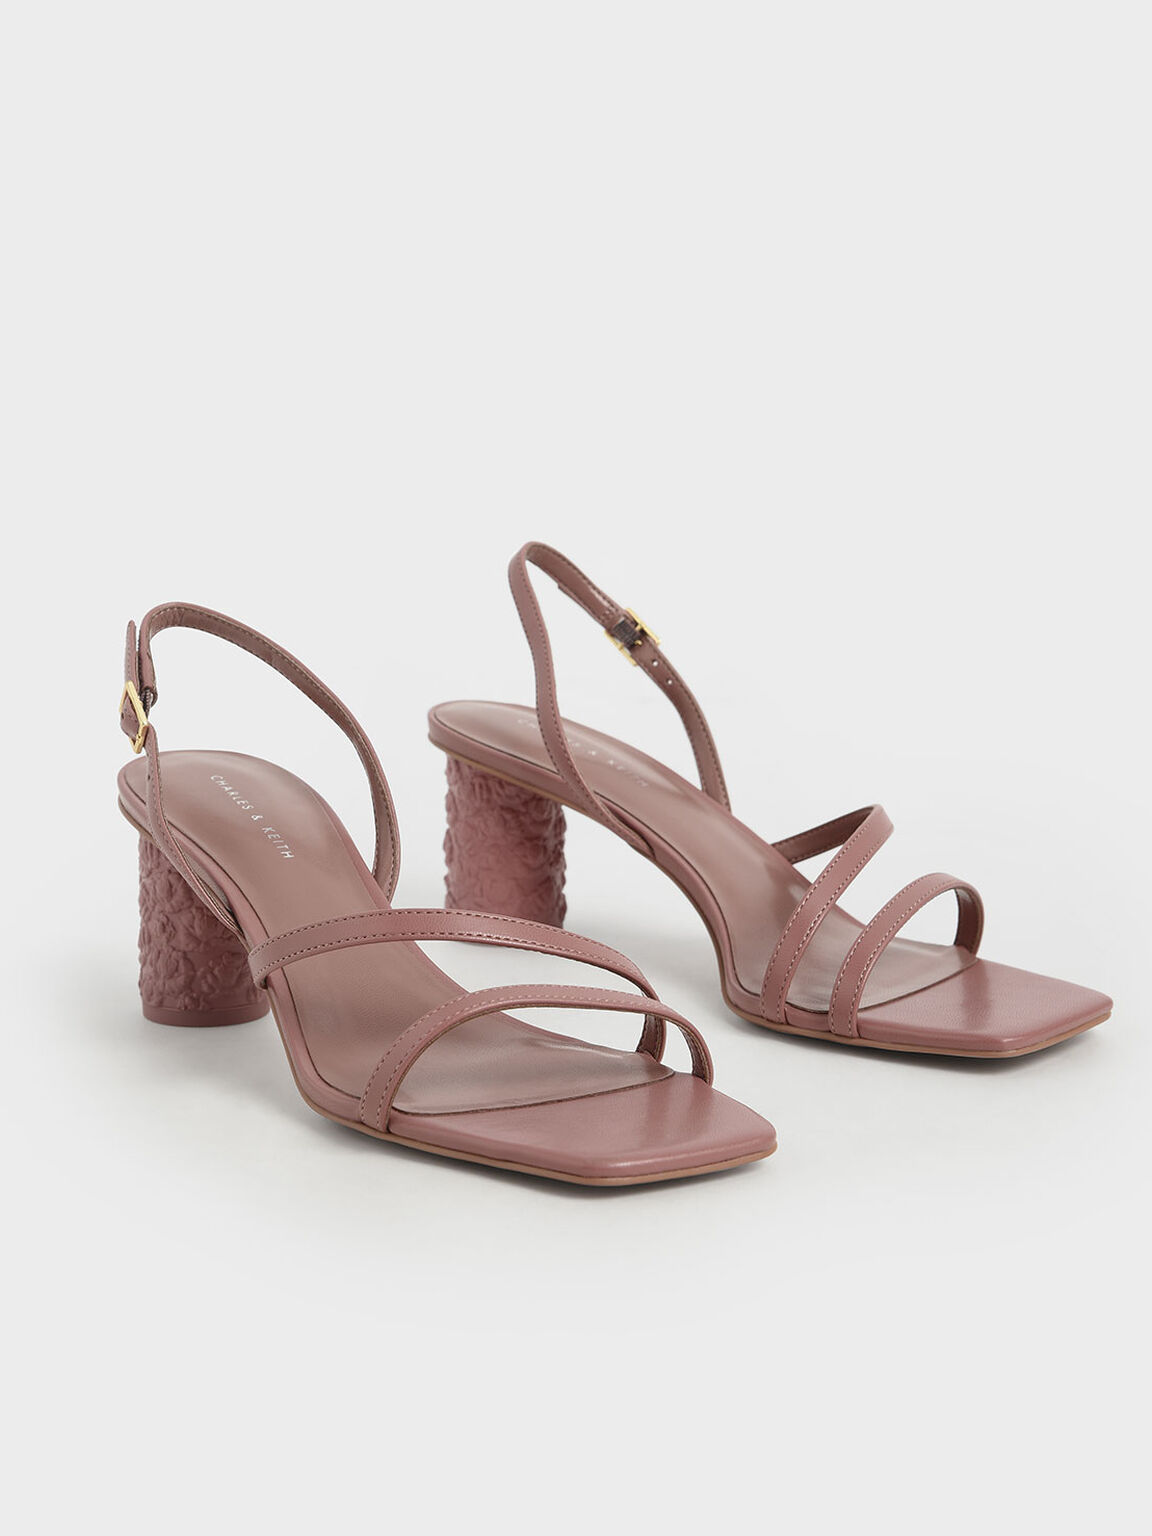 Strappy Cylindrical Heel Sandals, Pink, hi-res